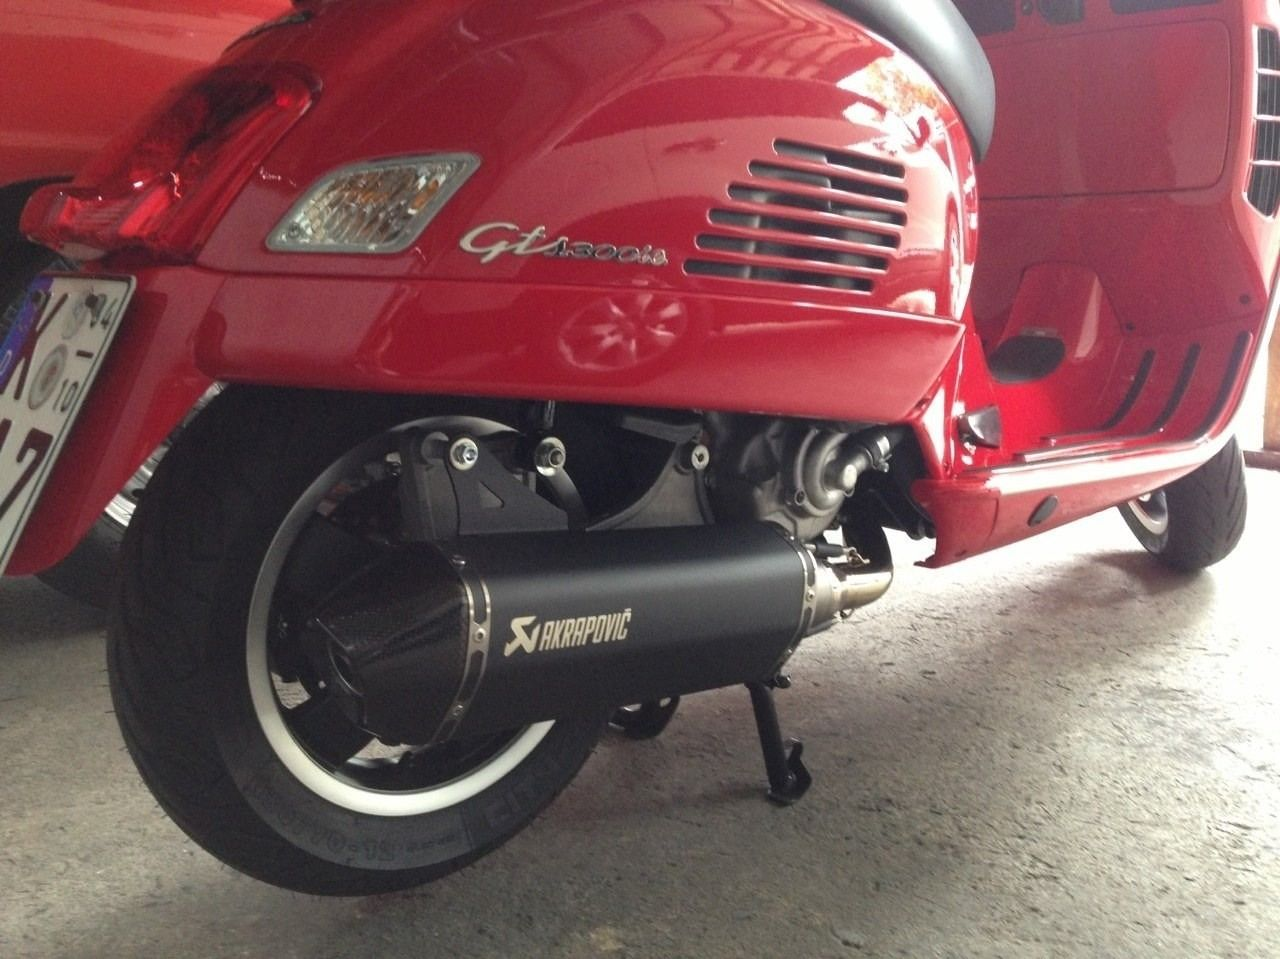 vespa gts300ie on akrapovic exhaust my style vespa. Black Bedroom Furniture Sets. Home Design Ideas